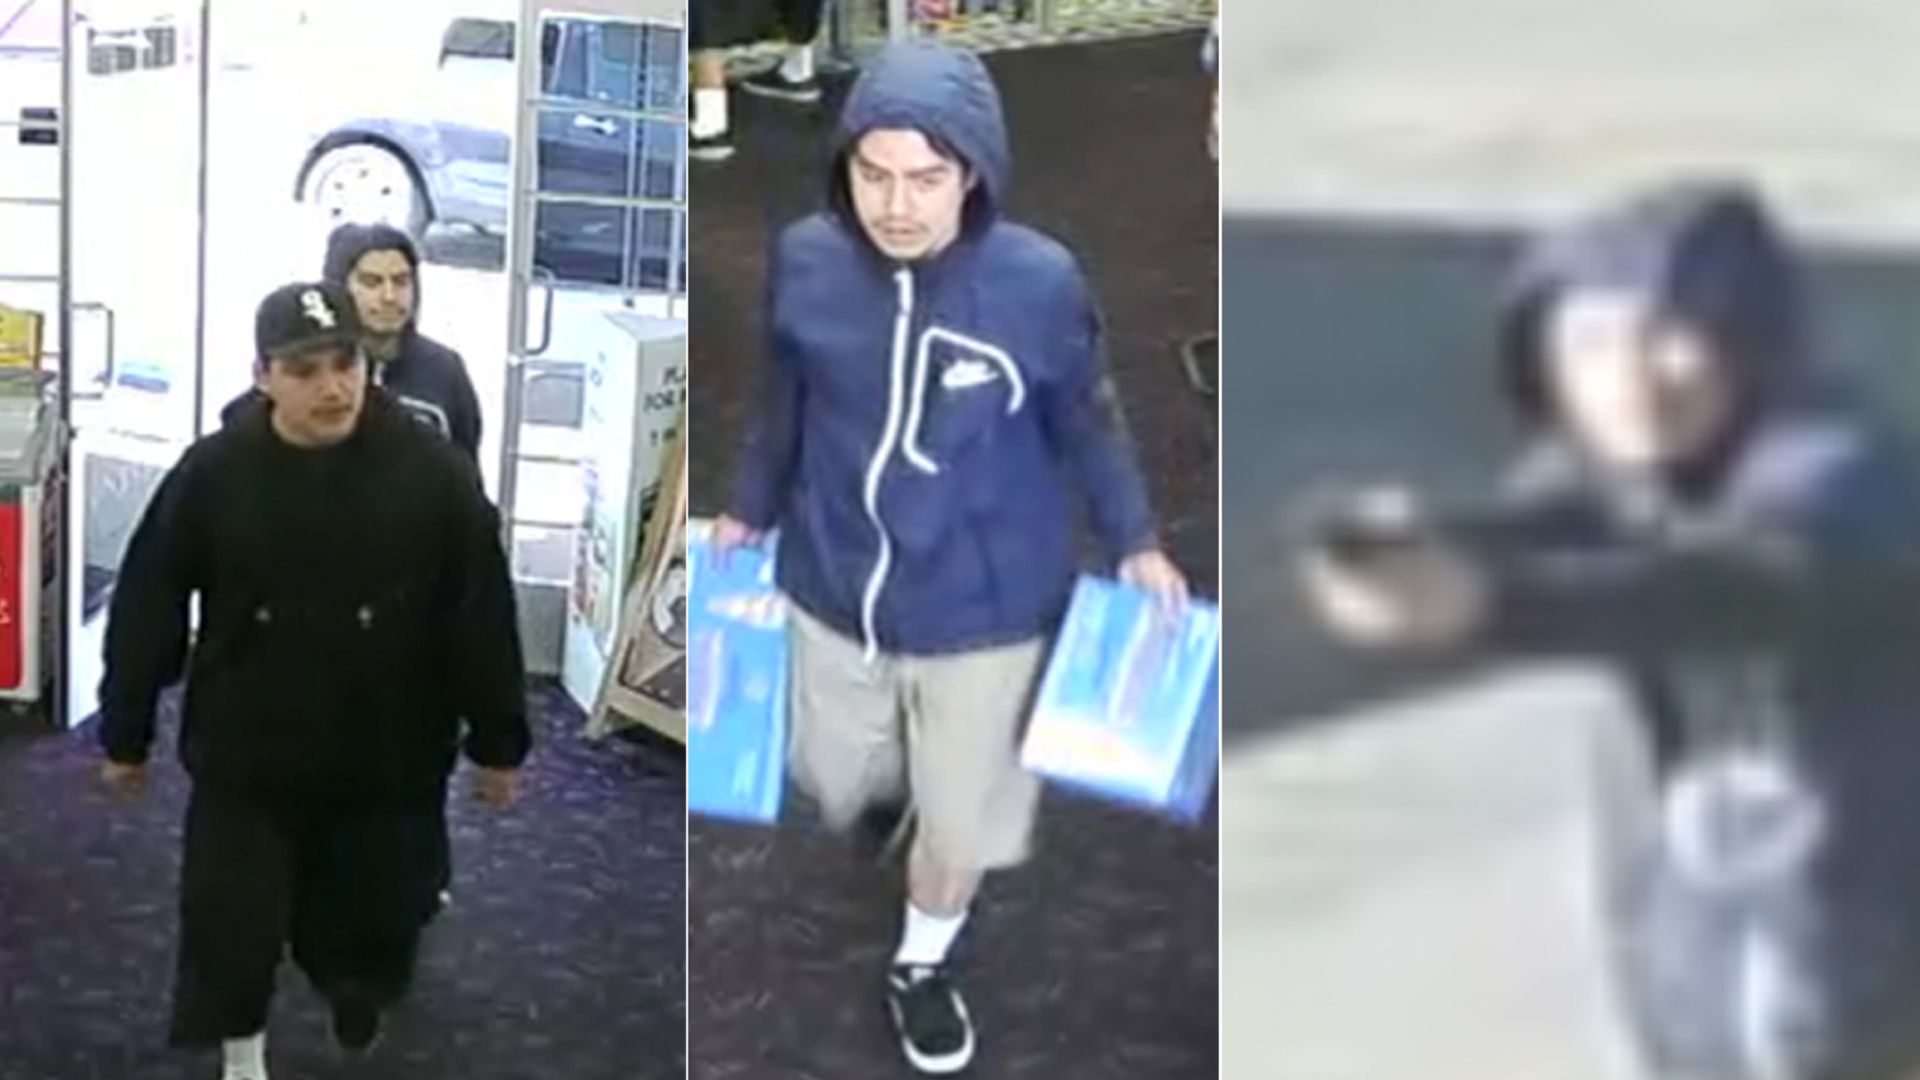 These surveillance images of a reported robbery at a Tustin liquor store on March 16, 2019, were released by police on April 8, 2019.